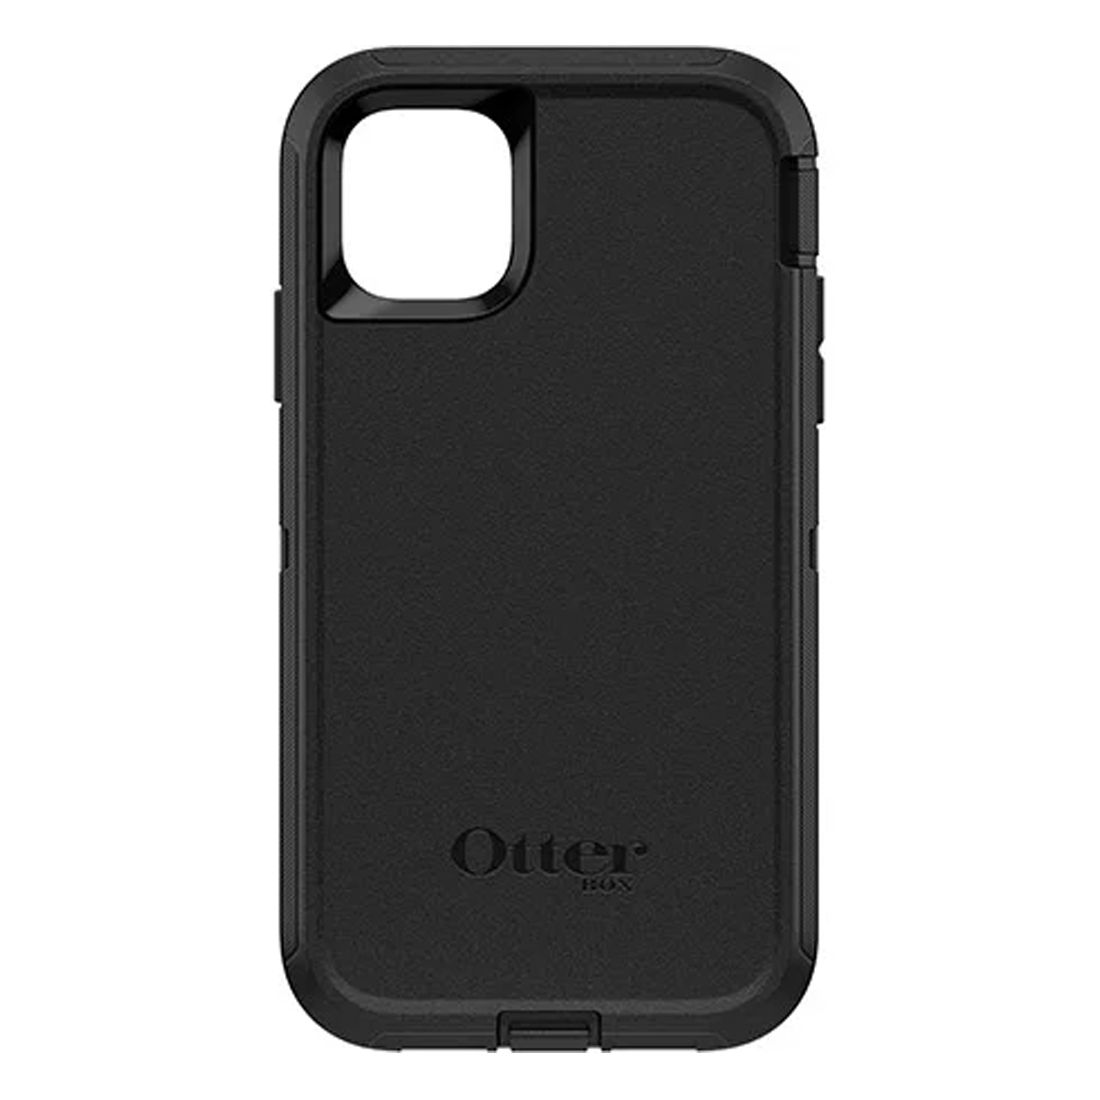 OtterBox Defender Screenless Edition Case For iPhone 11 - Black